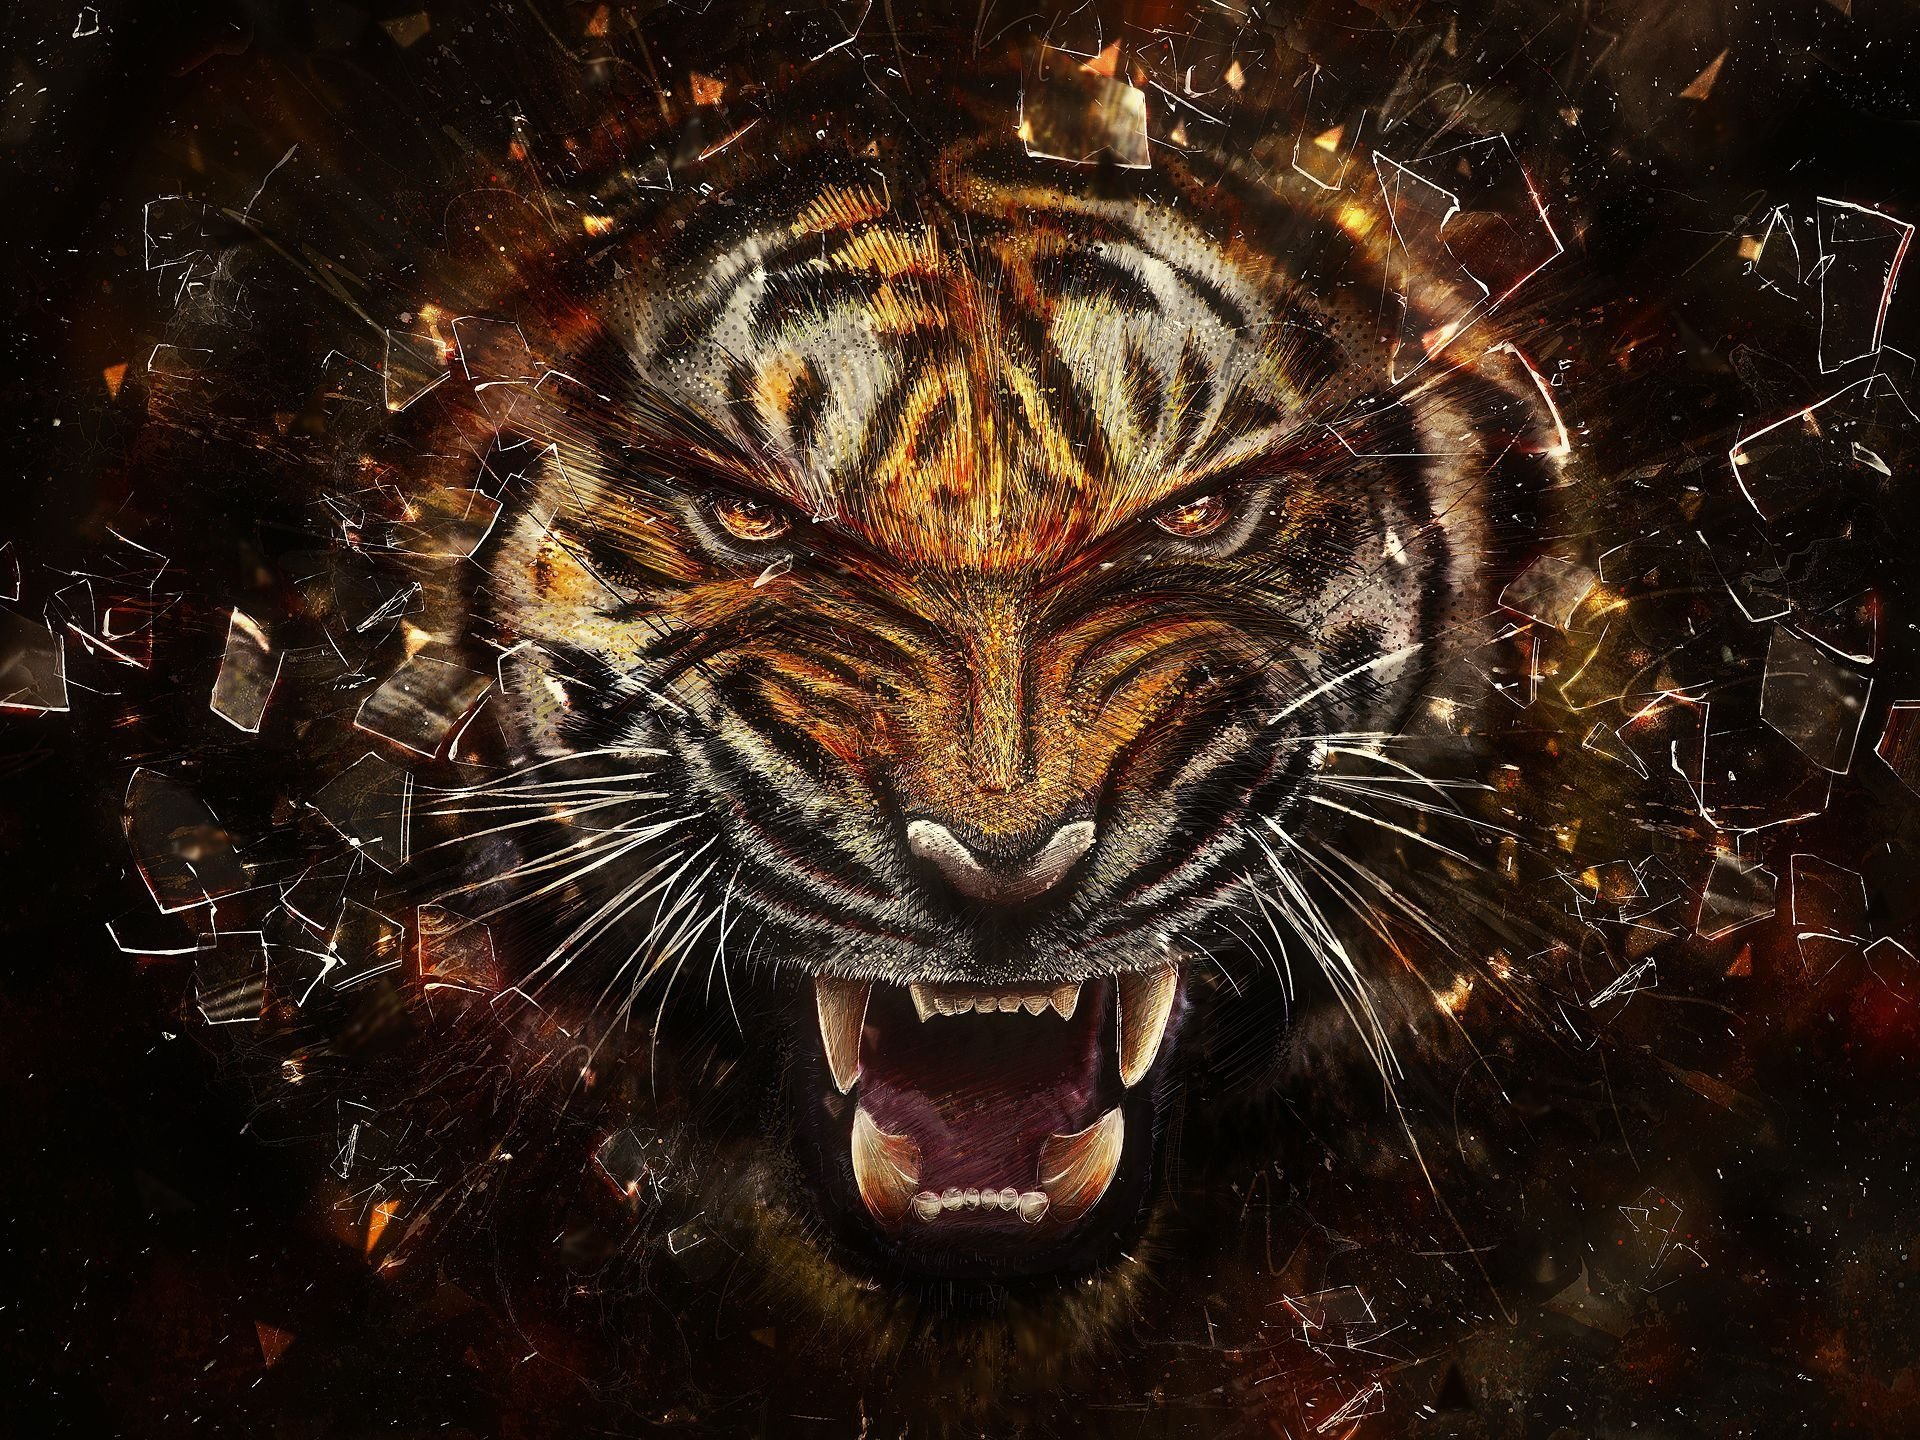 tiger full hd wallpaper and background image | 1920x1440 | id:472563